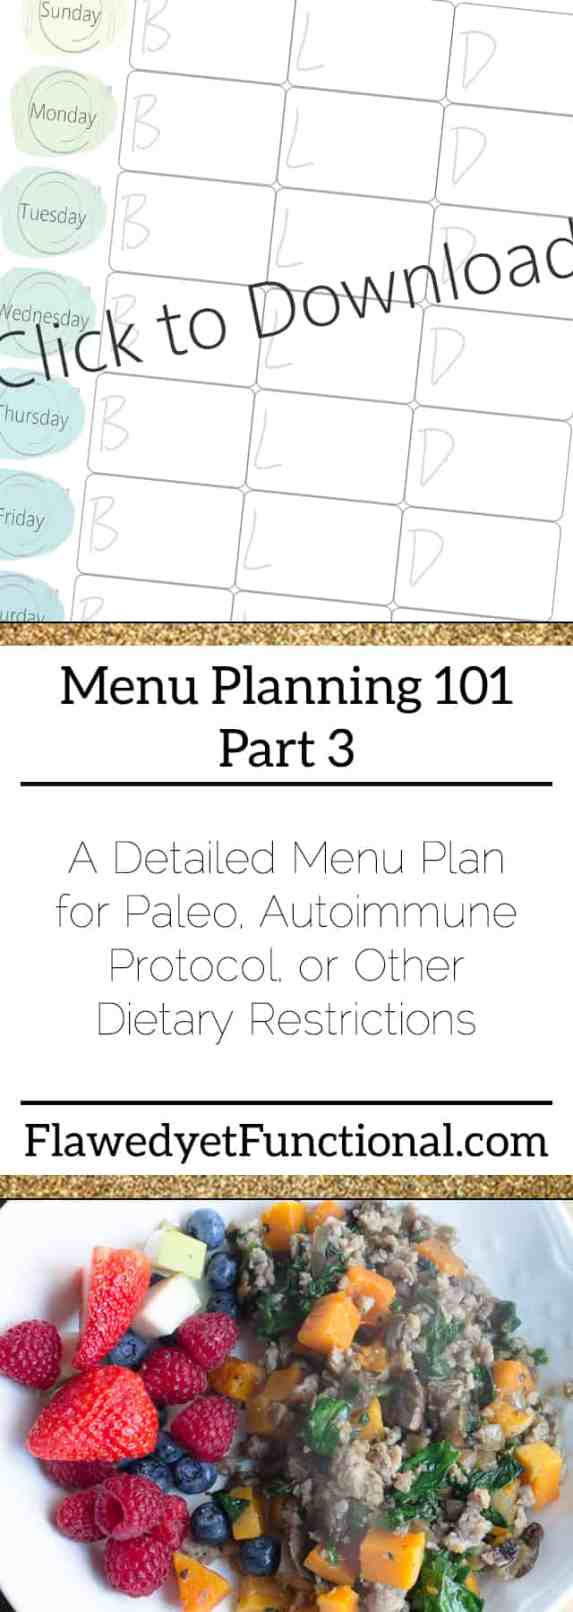 Menu Planning EveryMeal